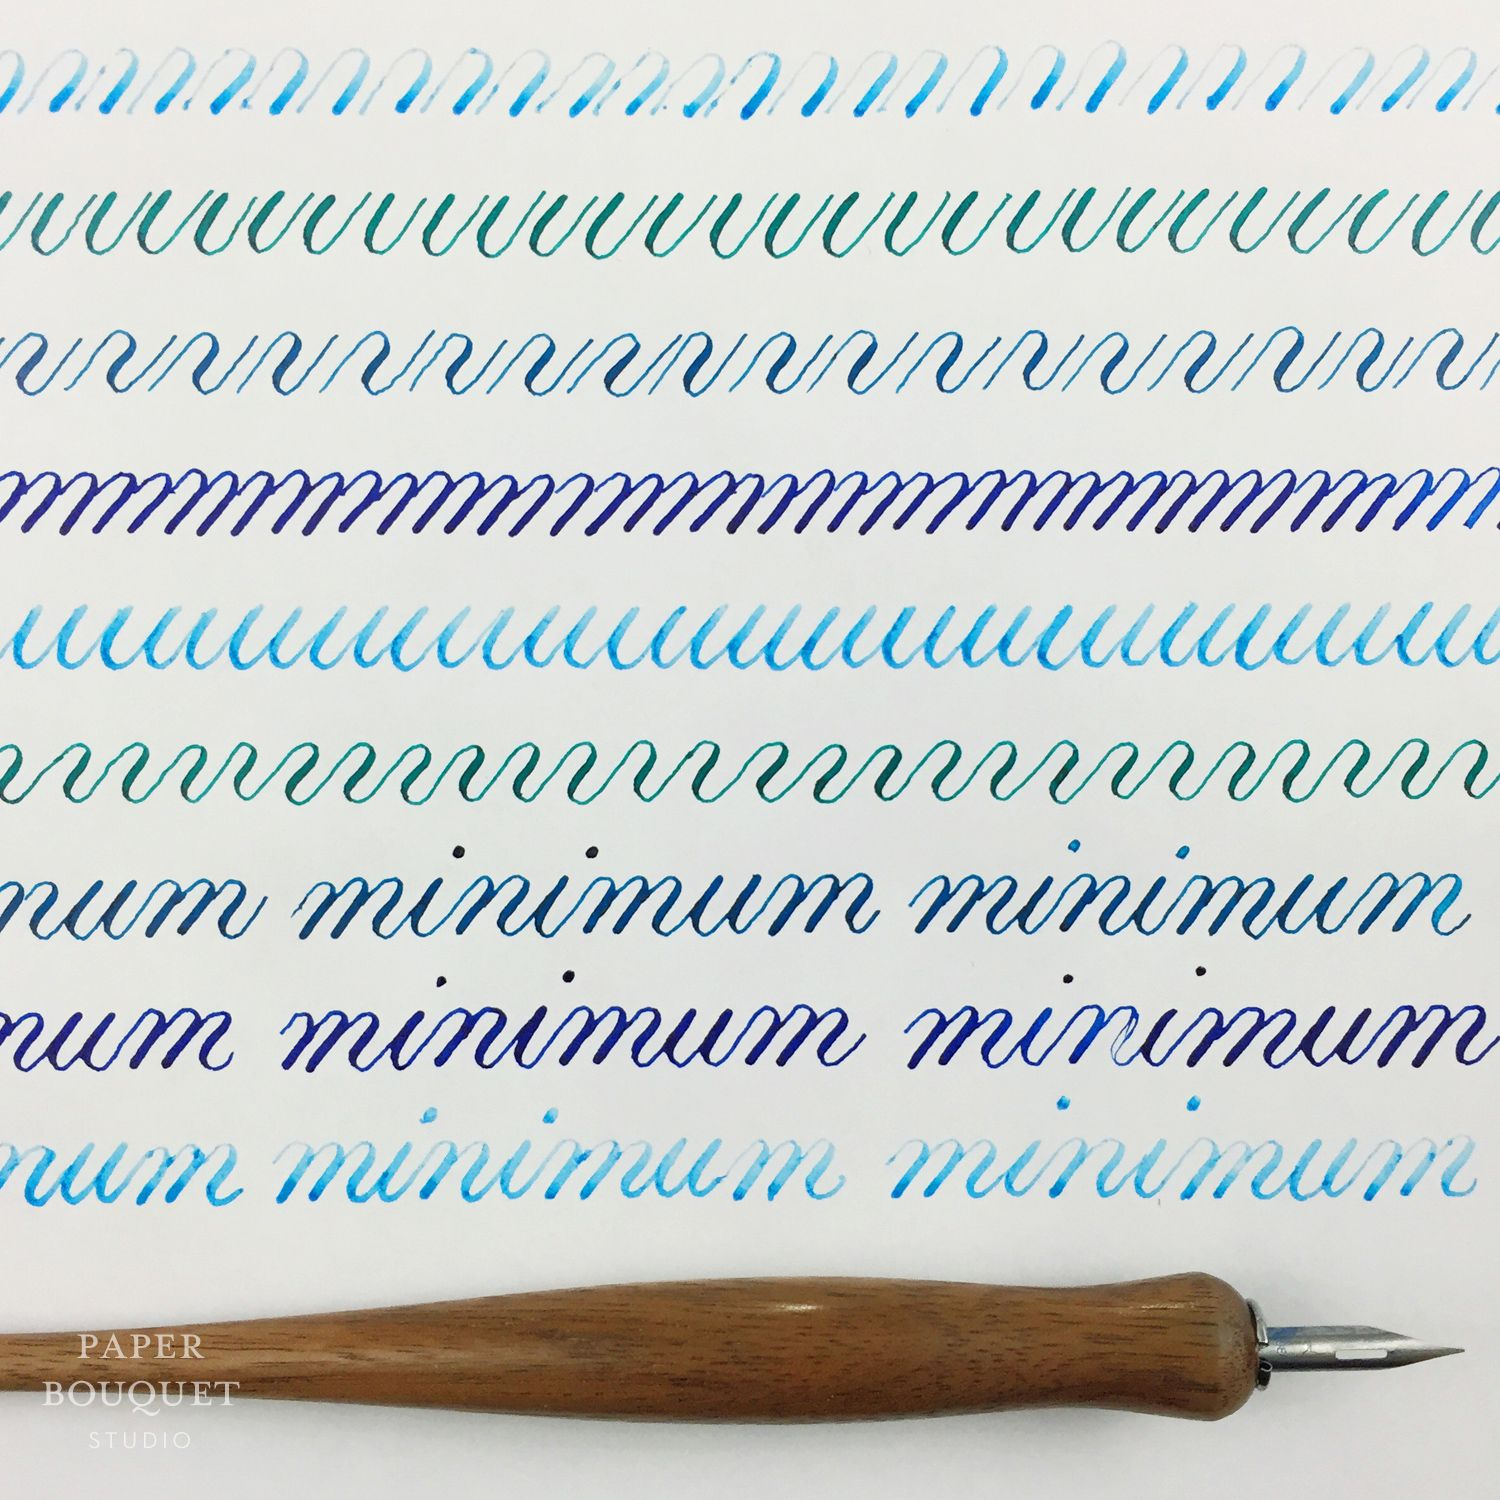 Shades Of Blue Calligraphy Drill Practice